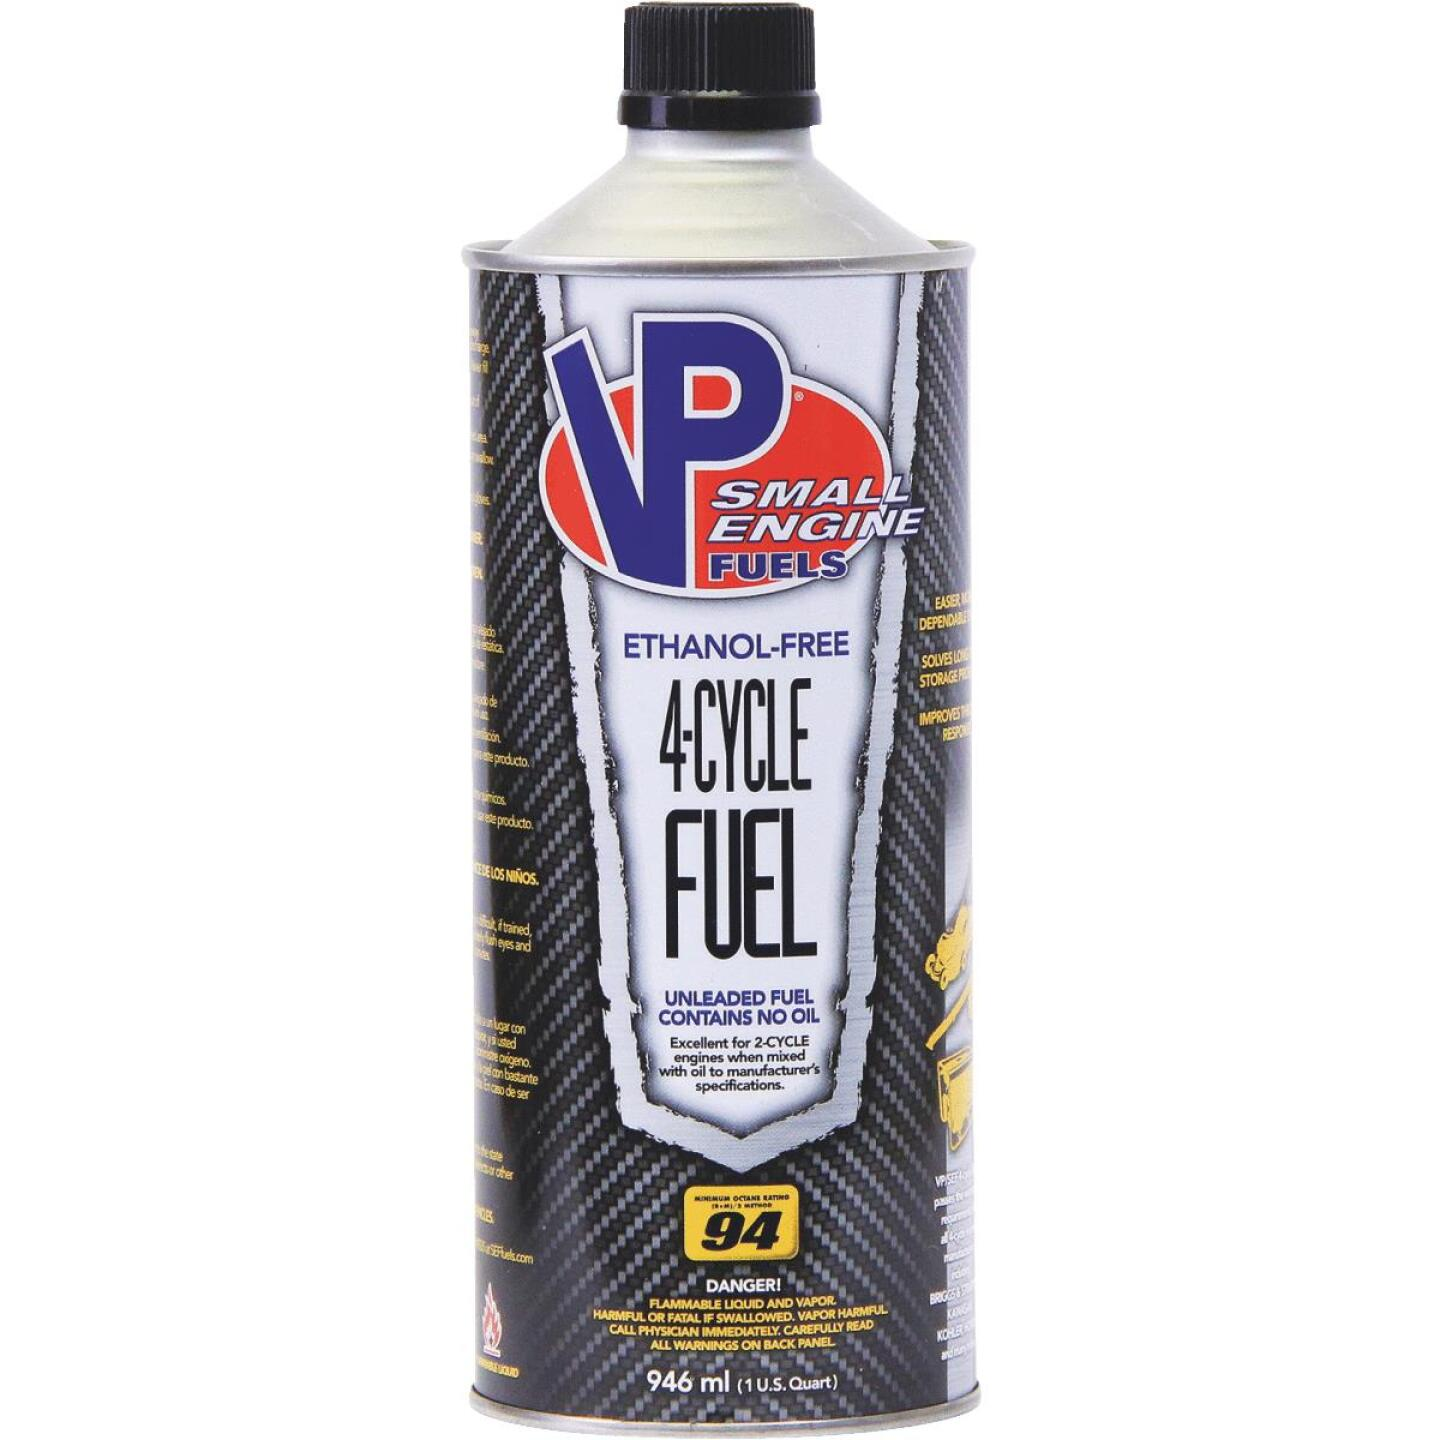 VP Small Engine Fuels 32 Oz. Ethanol-Free 4-Cycle Fuel Image 1